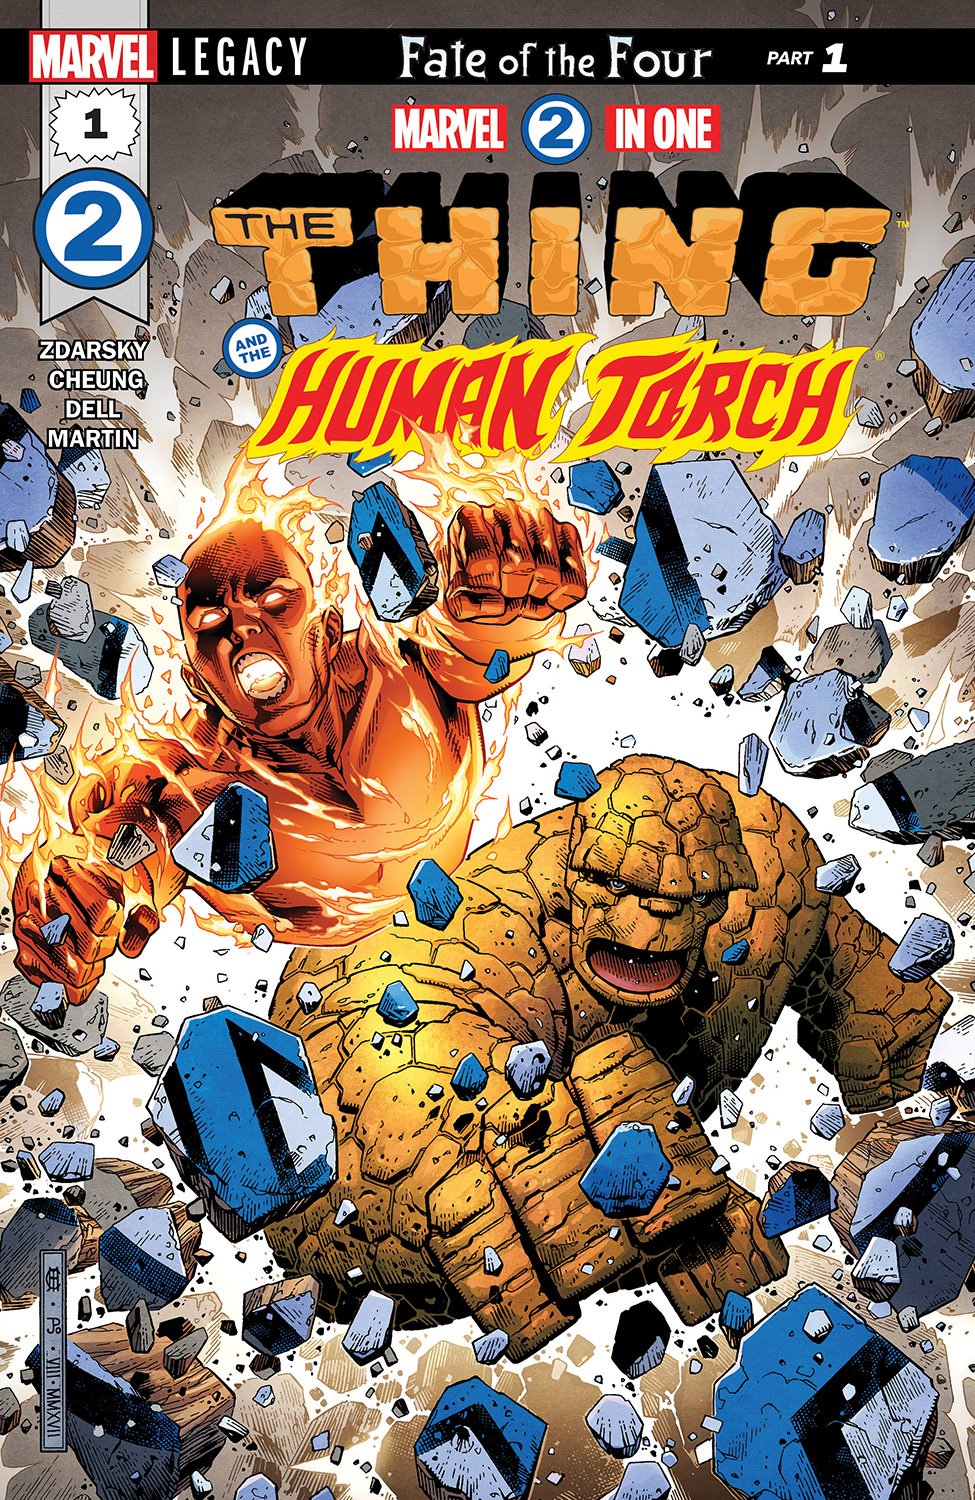 Marvel 2-in-One #1